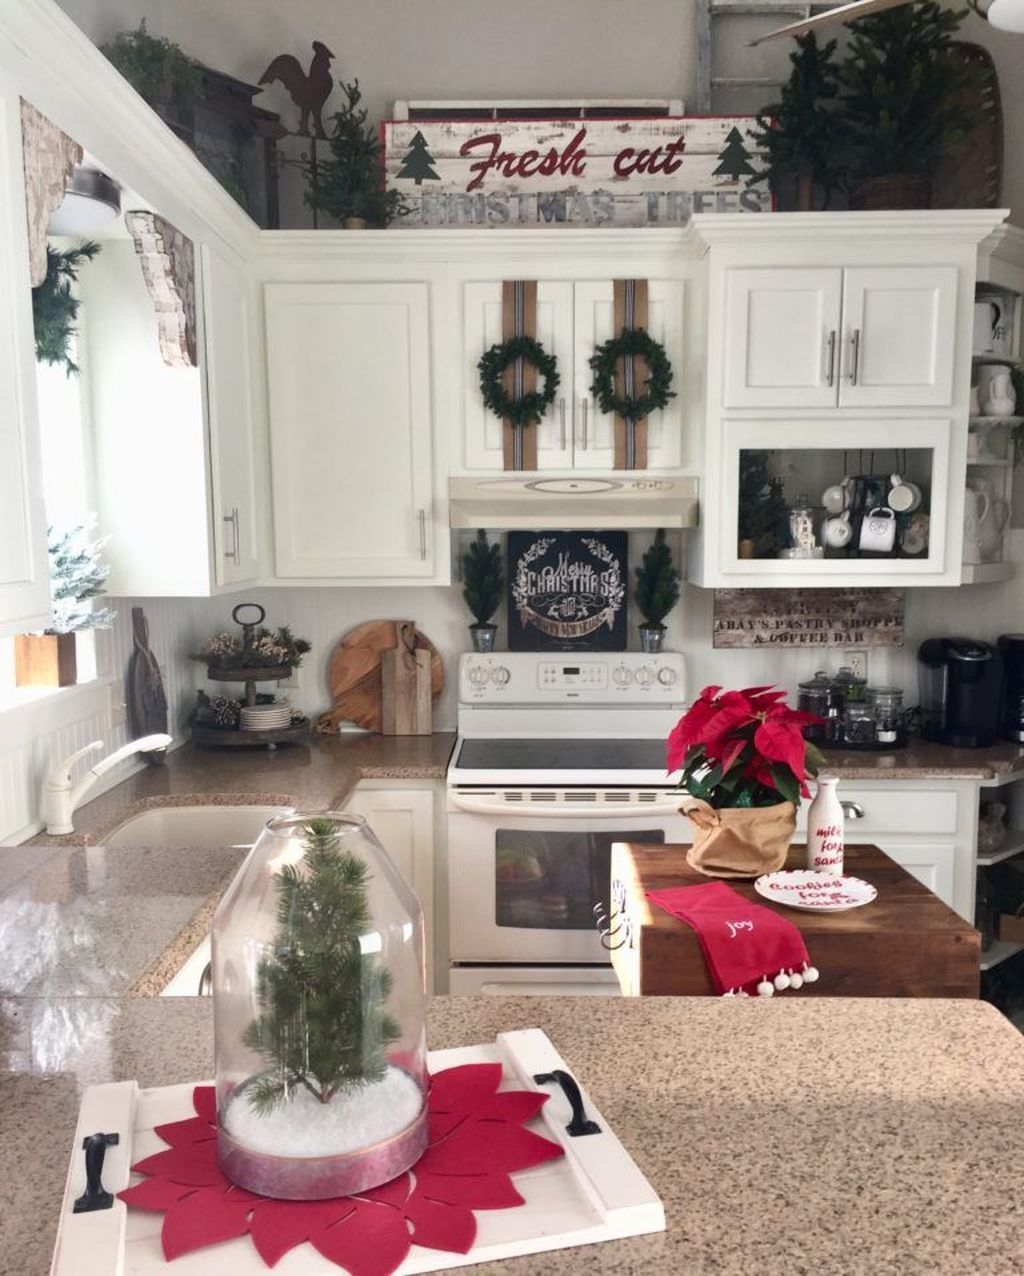 Amazing Christmas Decor For Kitchen Table 24